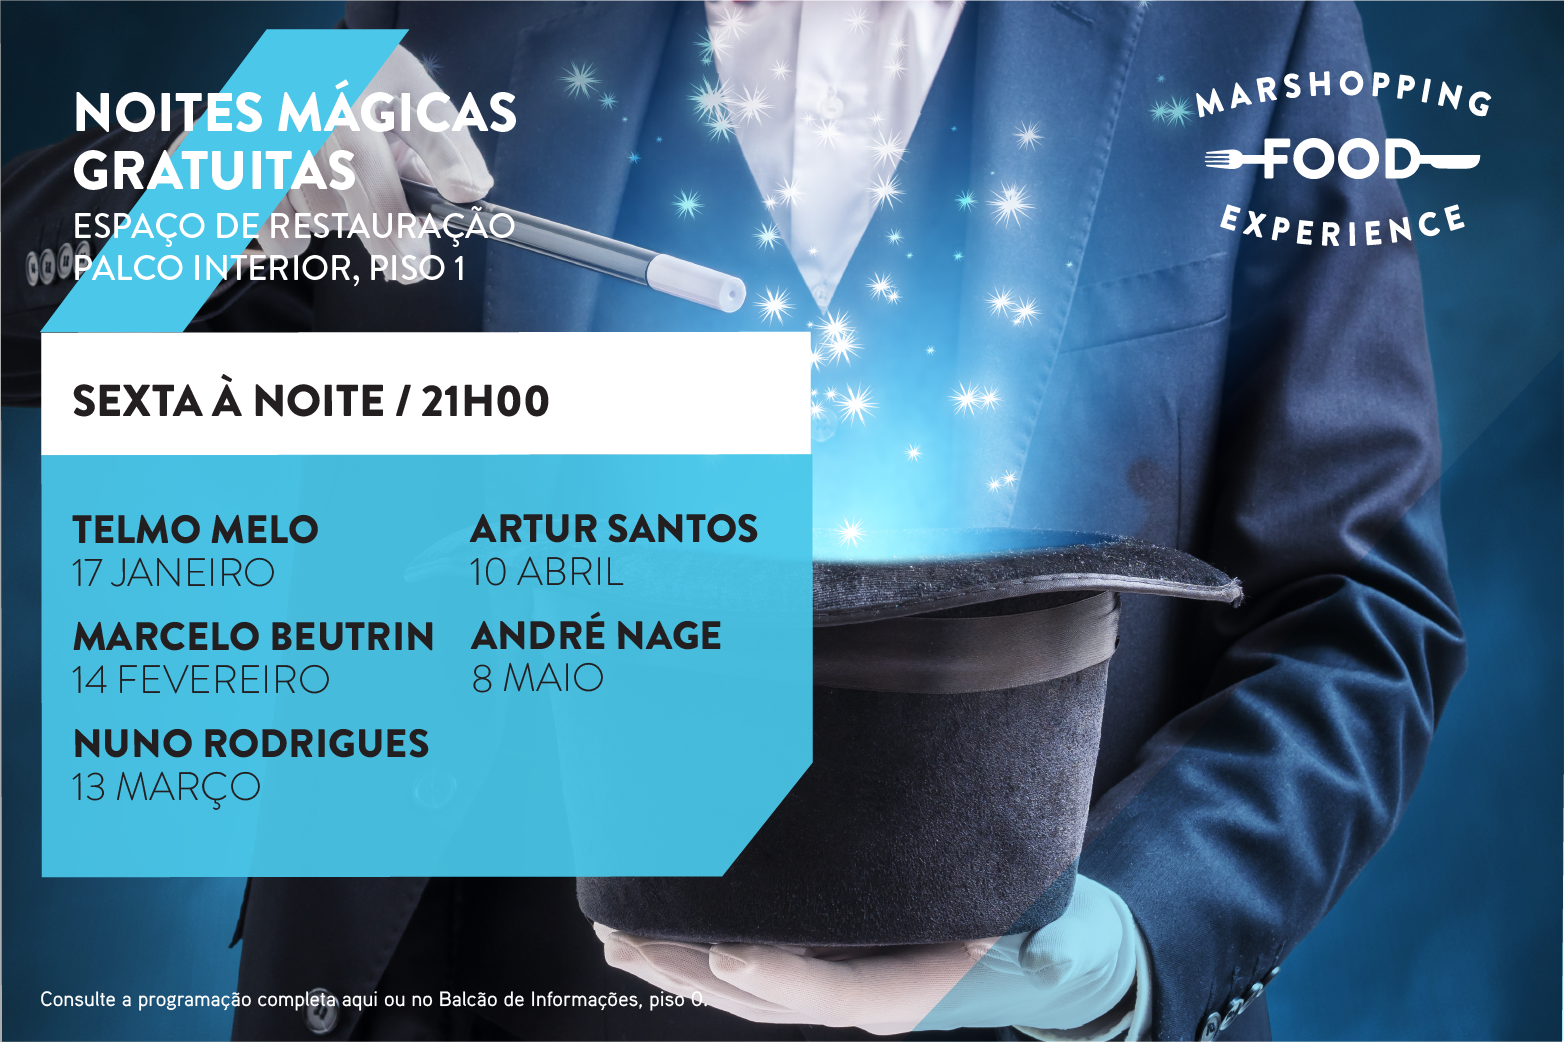 food-experience-noites-magicas